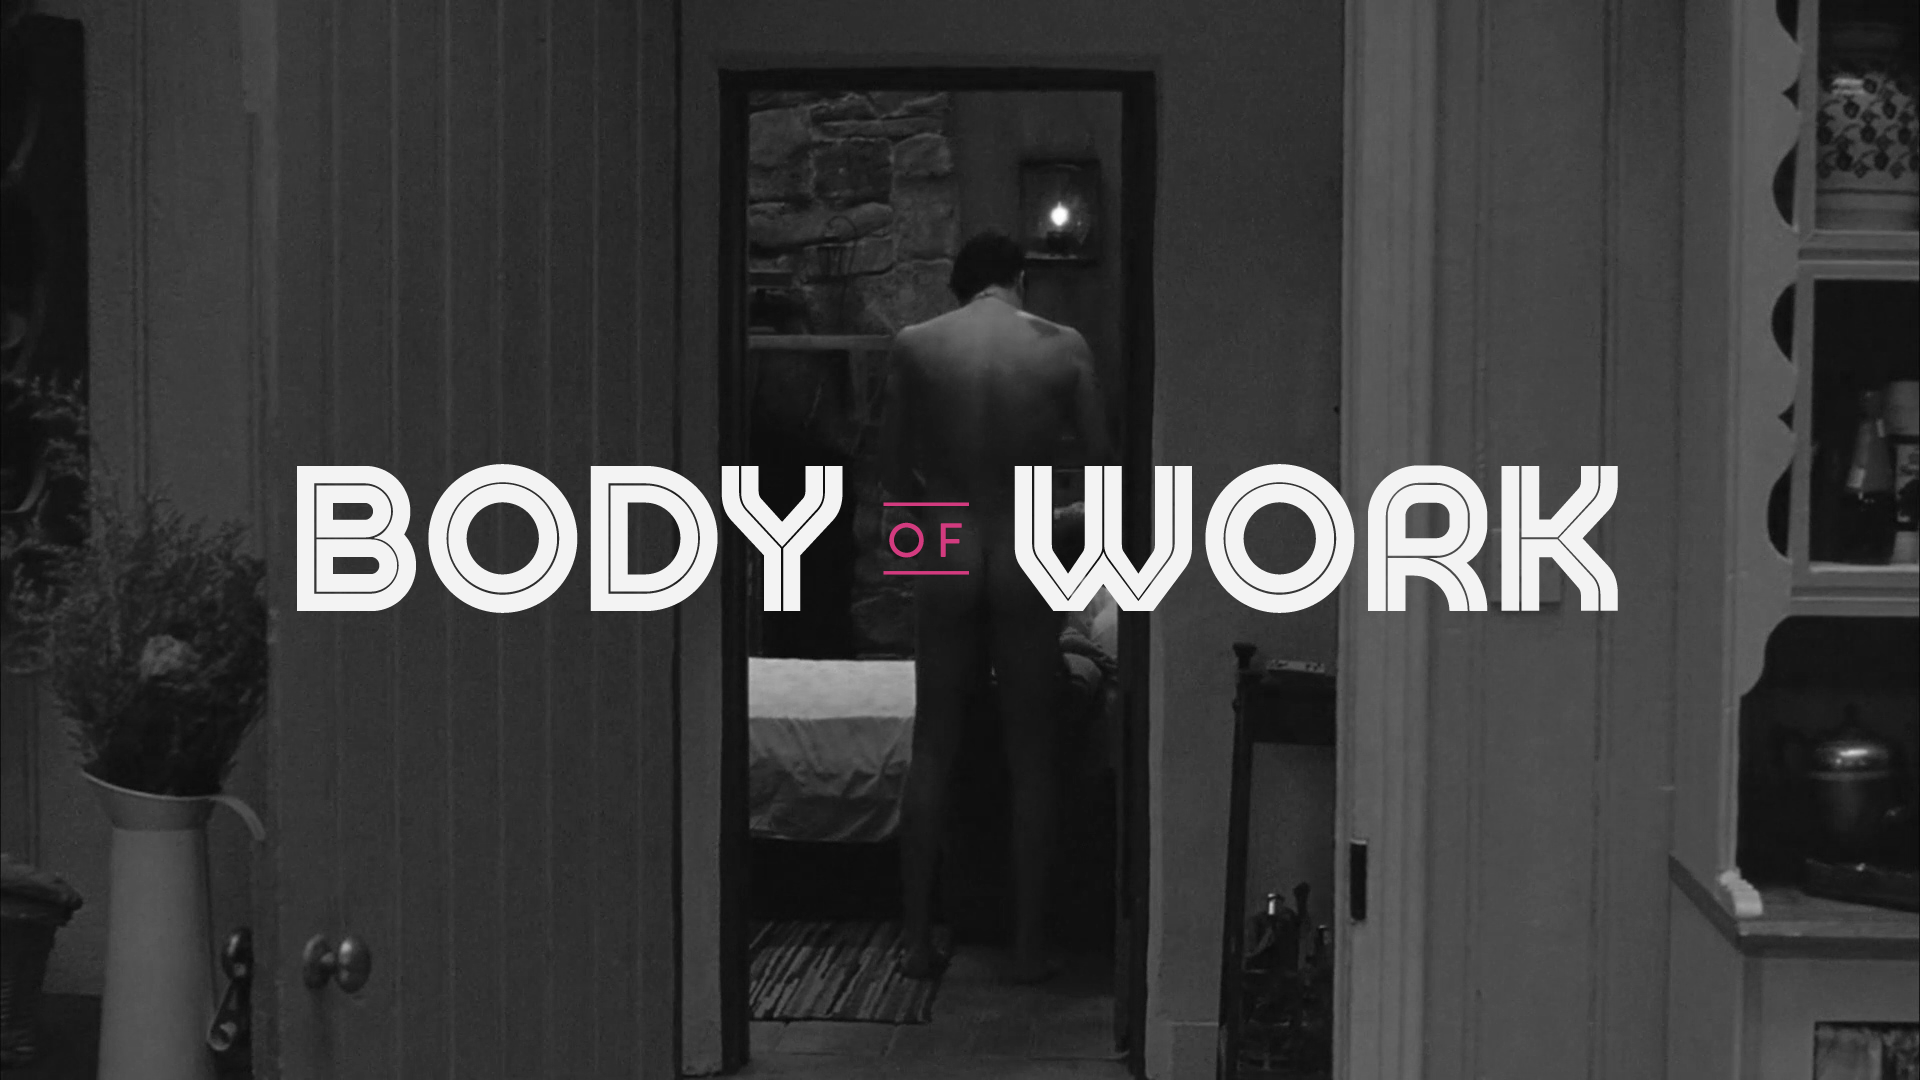 Bodyofwork actor 00 00 03 24 still001 nude preview image